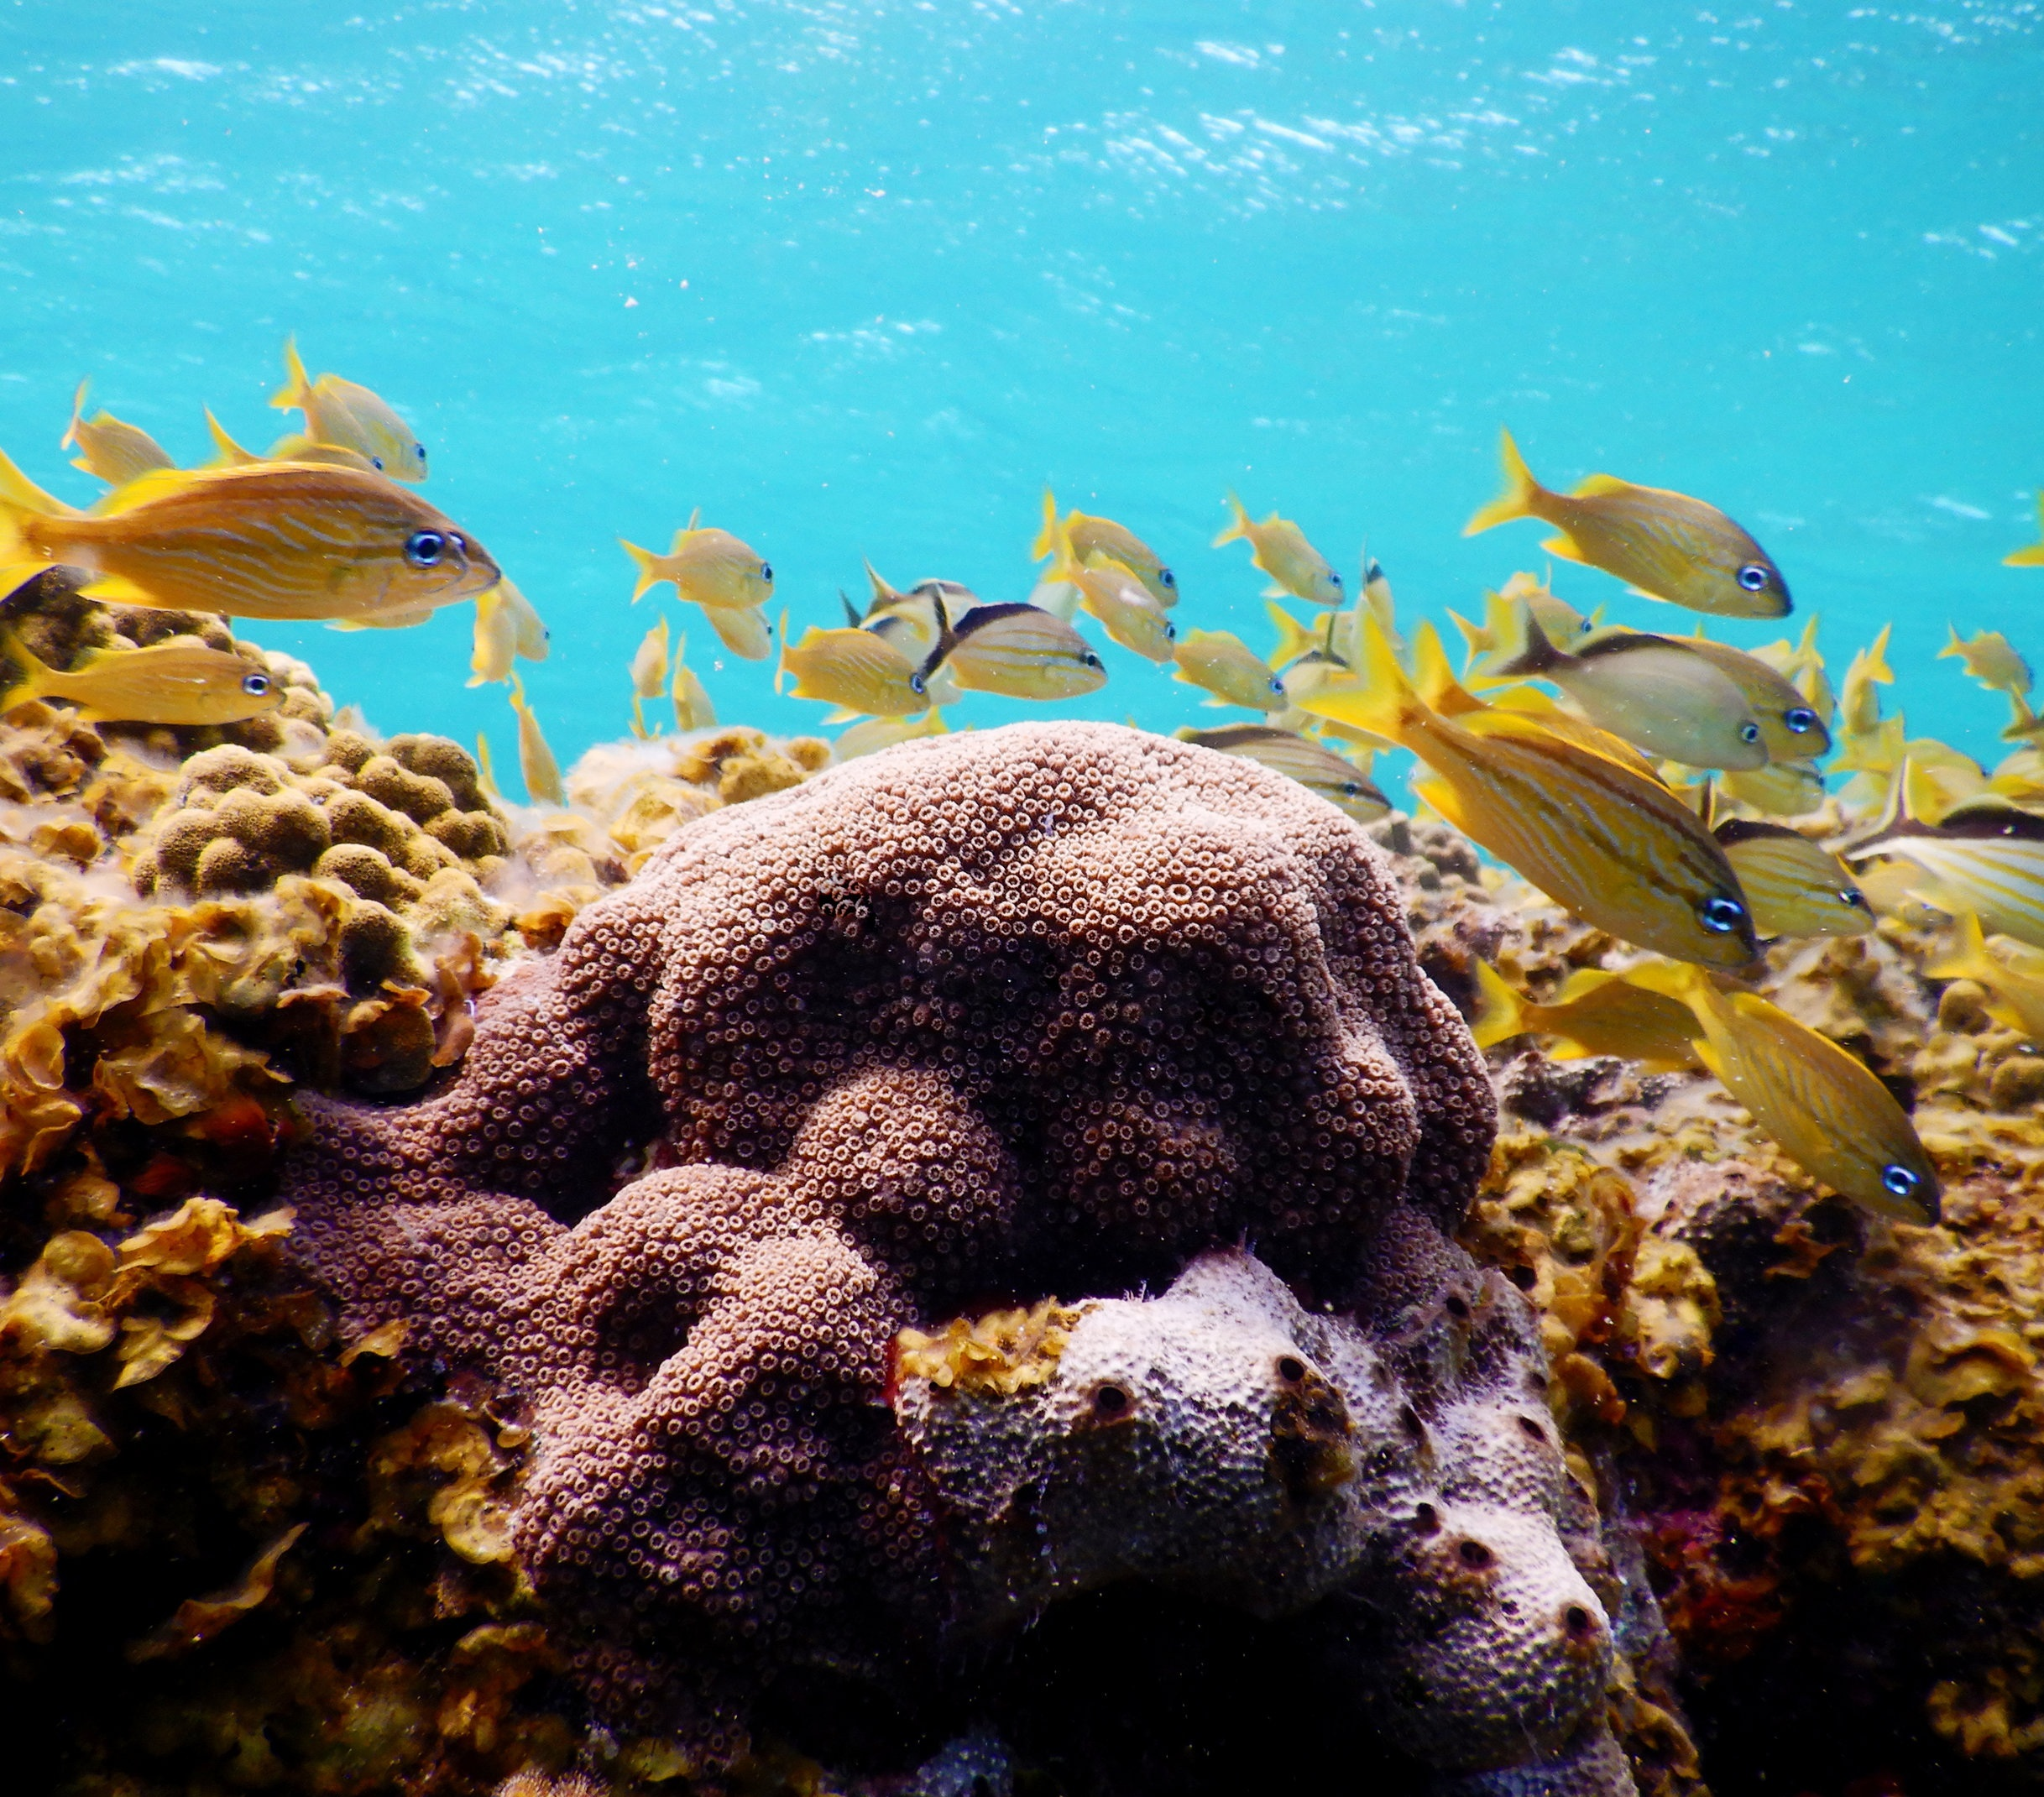 A mountainous star coral ( Orbicella faveolata ) colony surrounded by reef fish near Eleuthera.